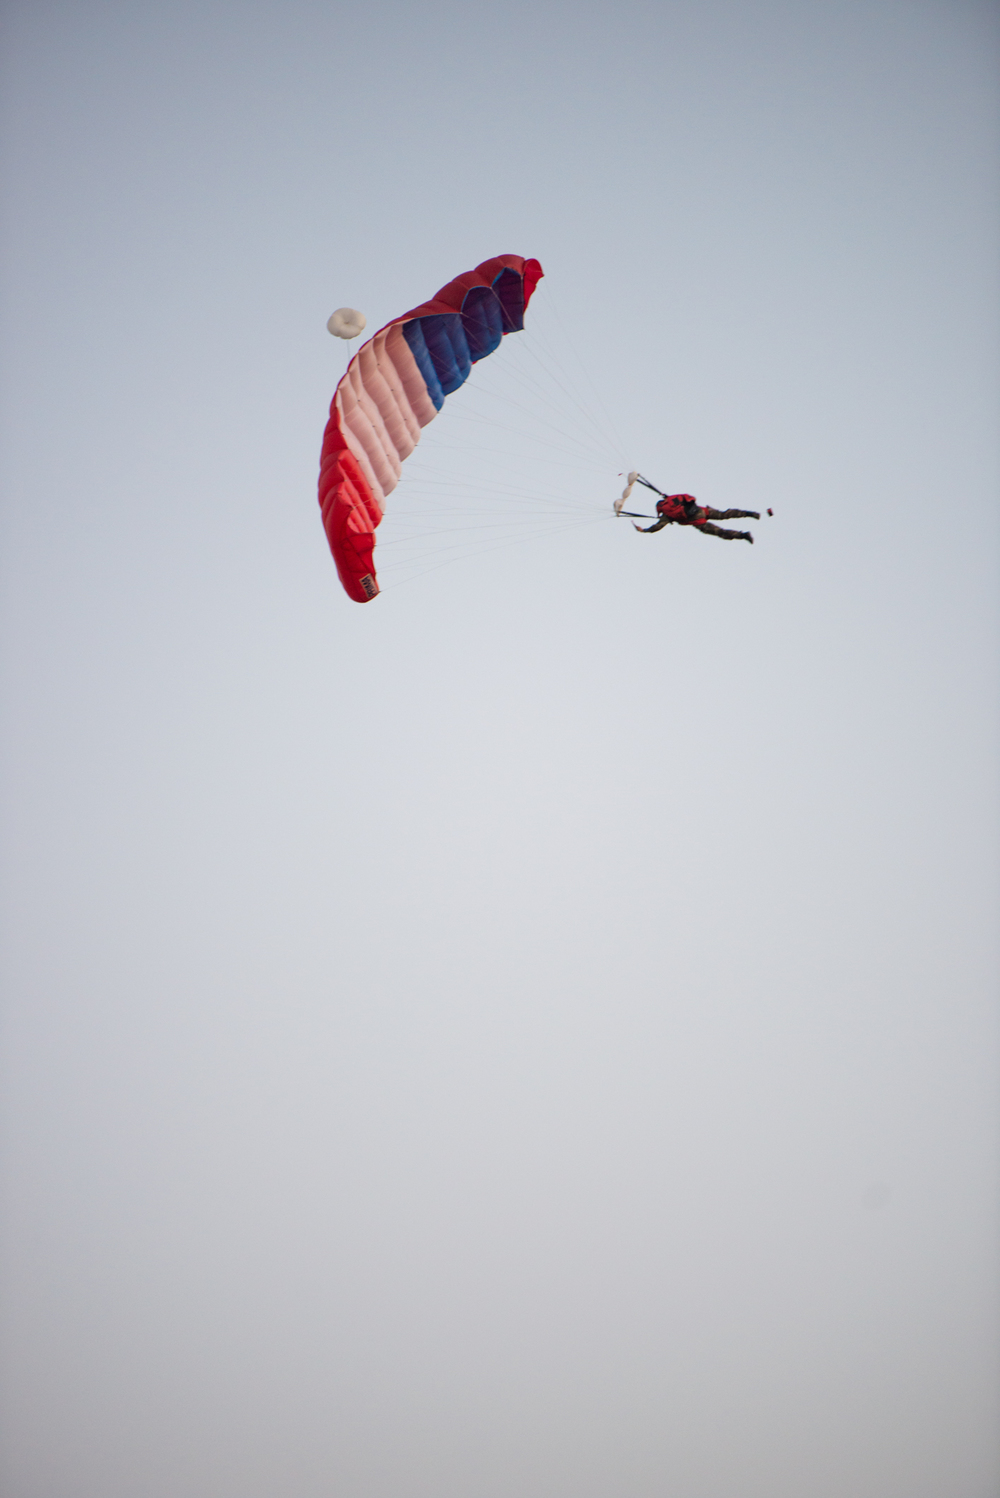 To celebrate Bastille Day, paratroopers jumped from planes and landed to the surprise of visitors.